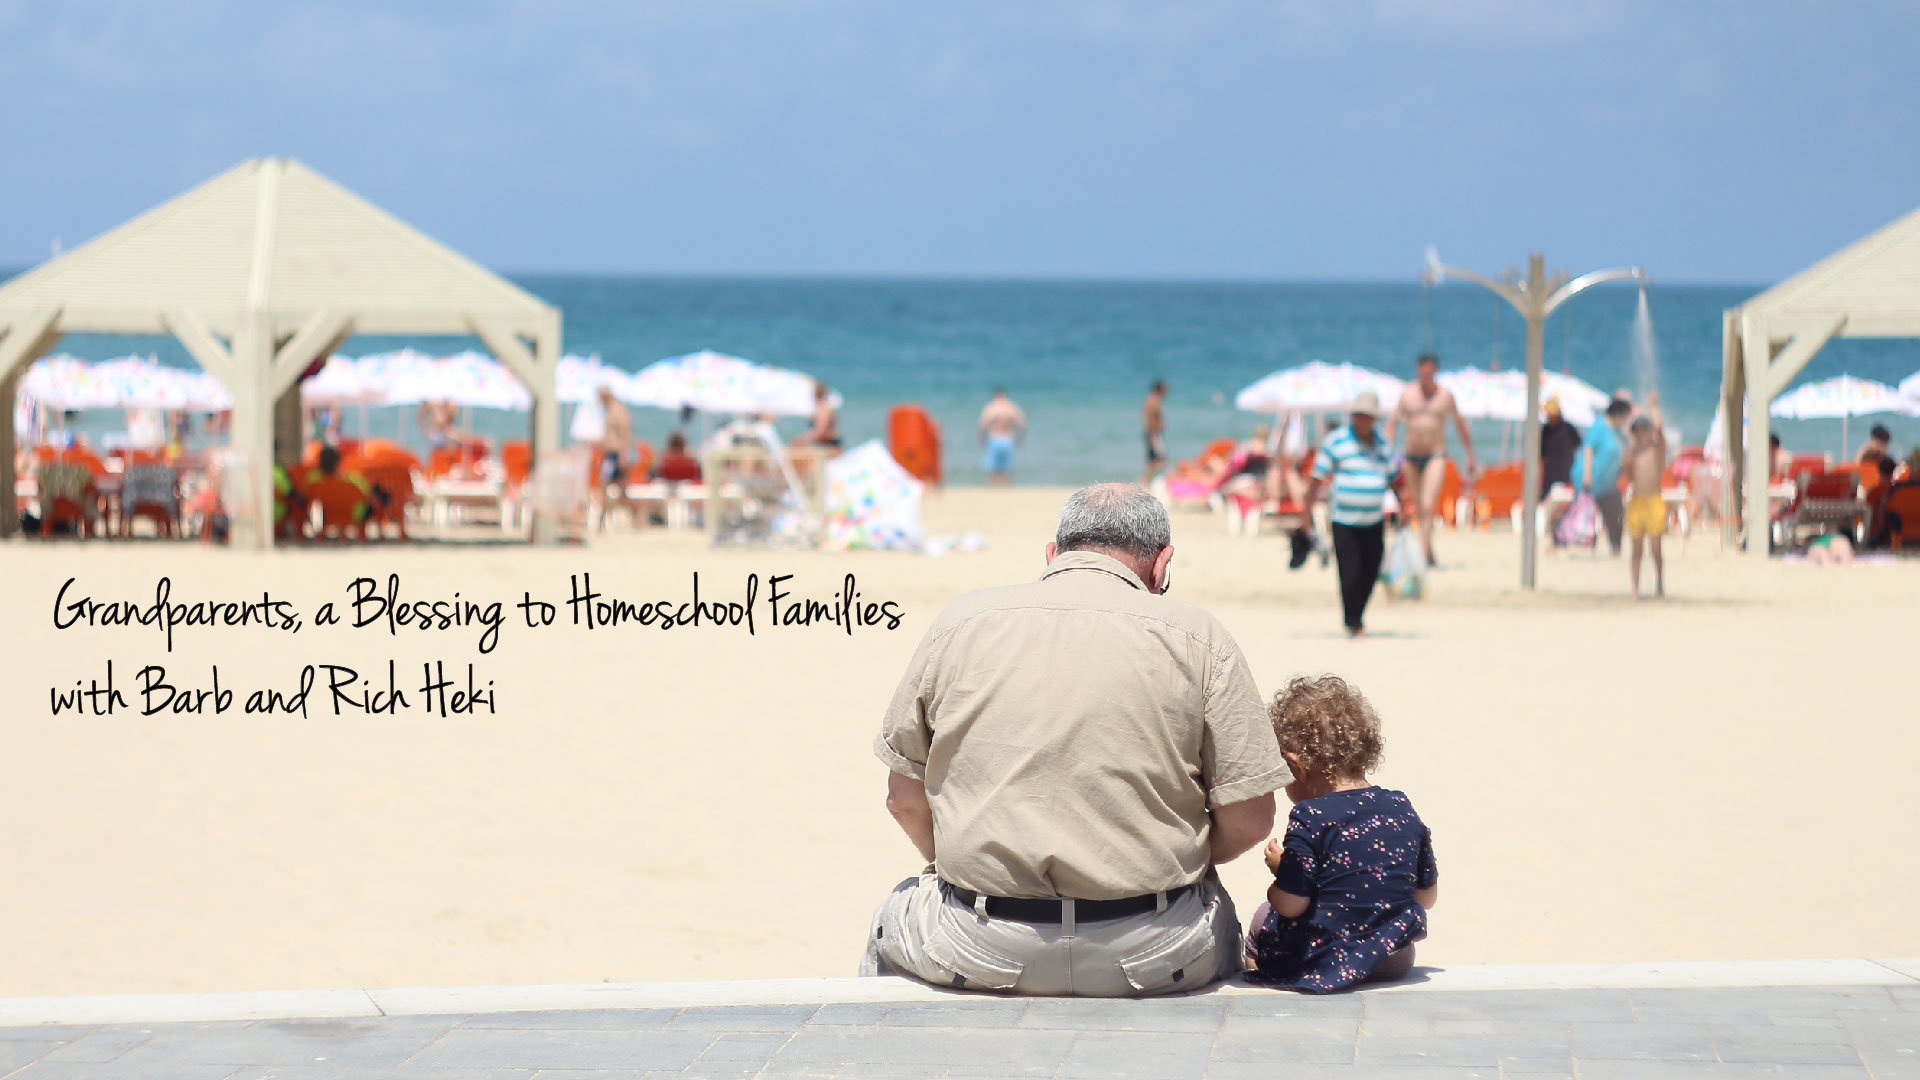 Grandparents, a Blessing to Homeschooling Families